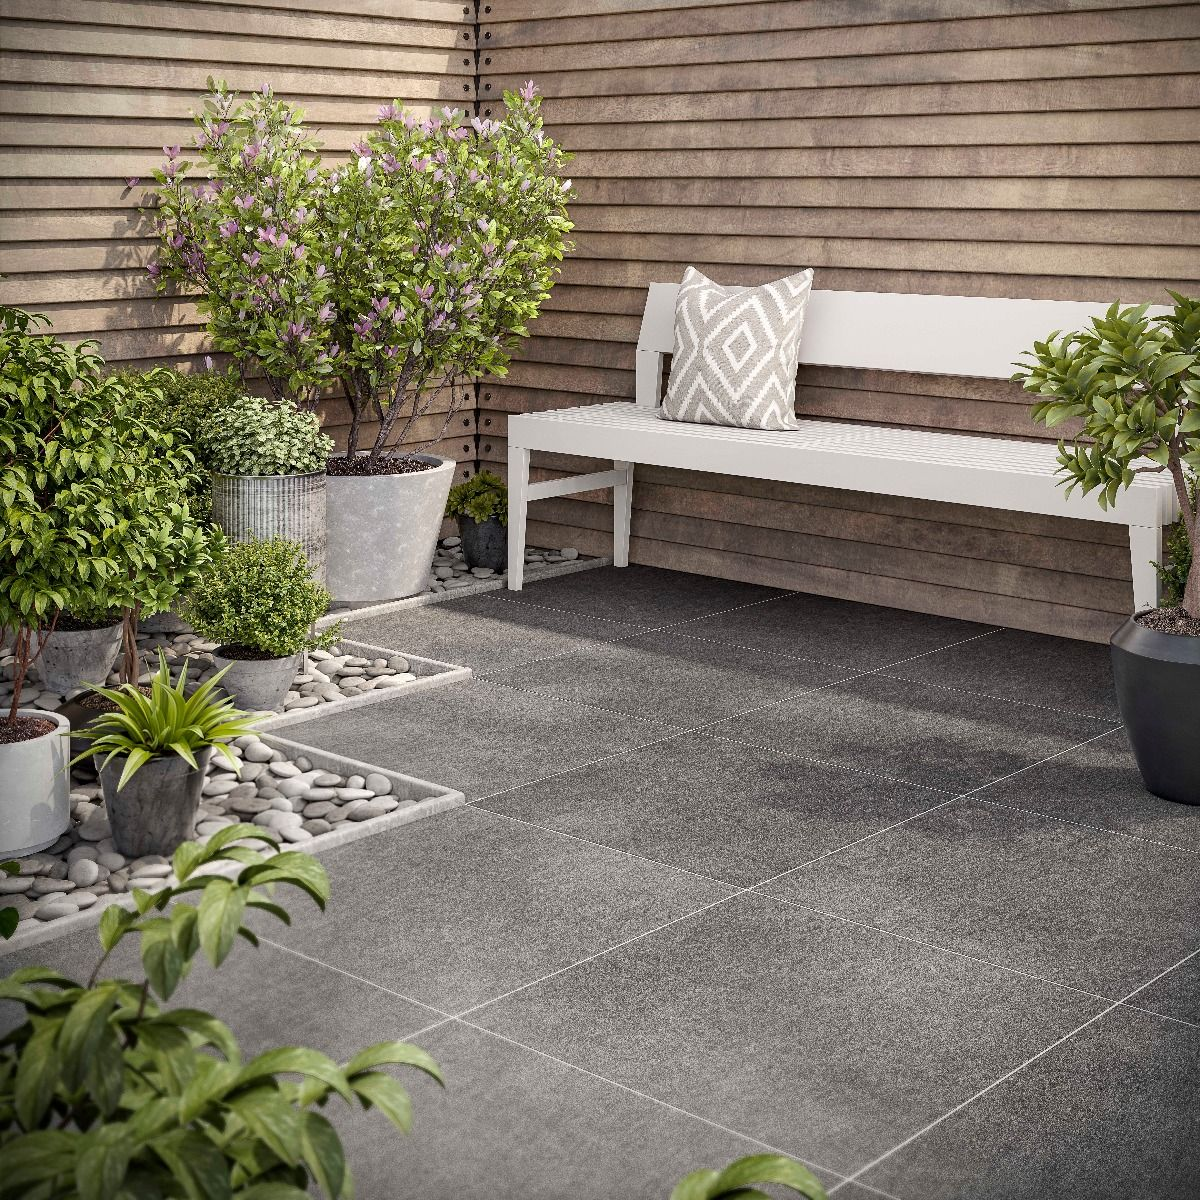 Al Fresco Emmett Black Matt Glazed Porcelain Outdoor Tile 600x600x20mm